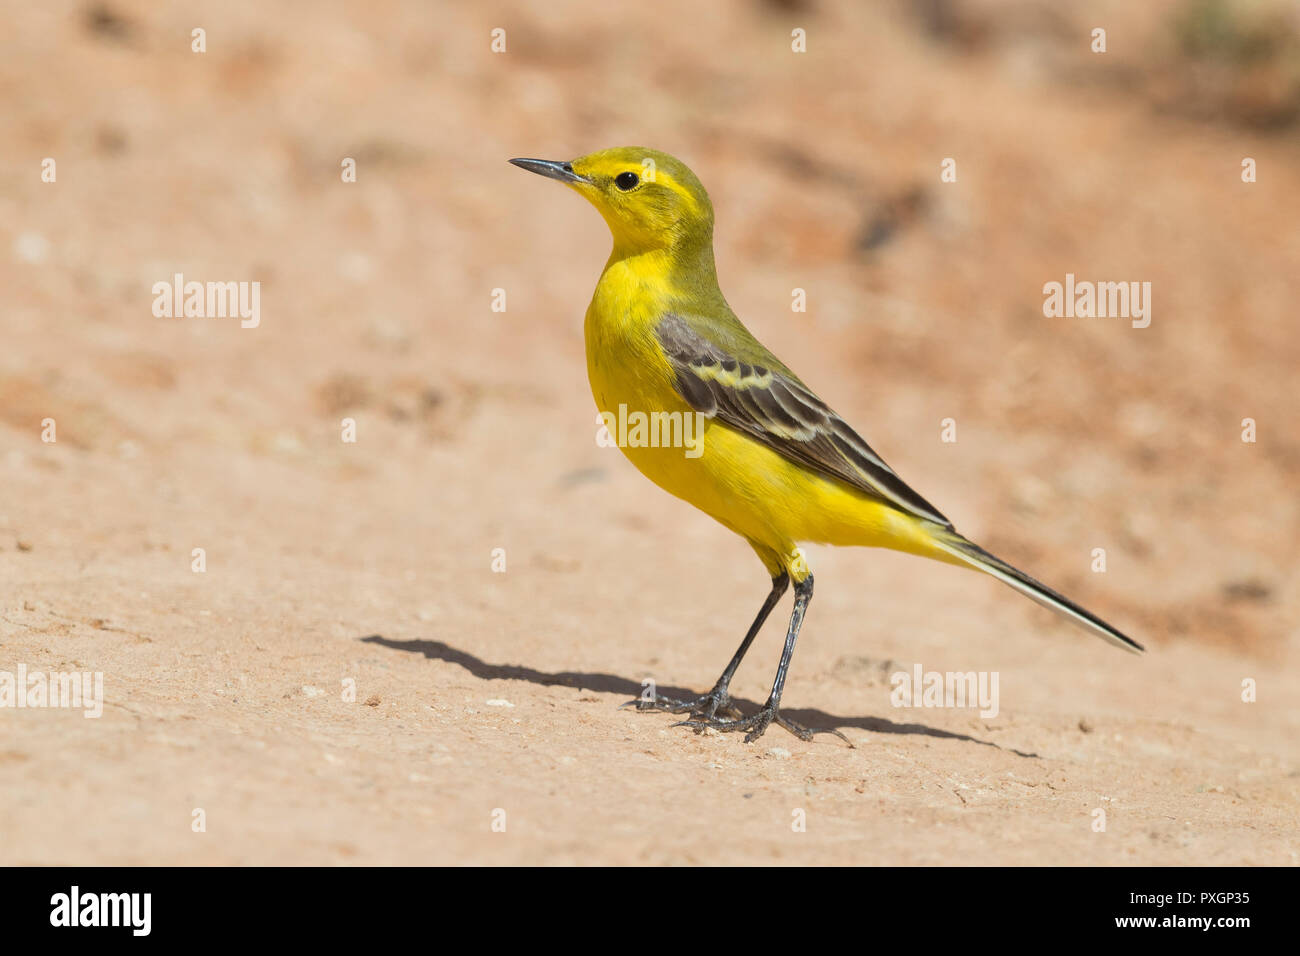 Western Yellow Wagtail (Motacilla flava flavissima), side view of an adult male standing on the ground in Morocco - Stock Image